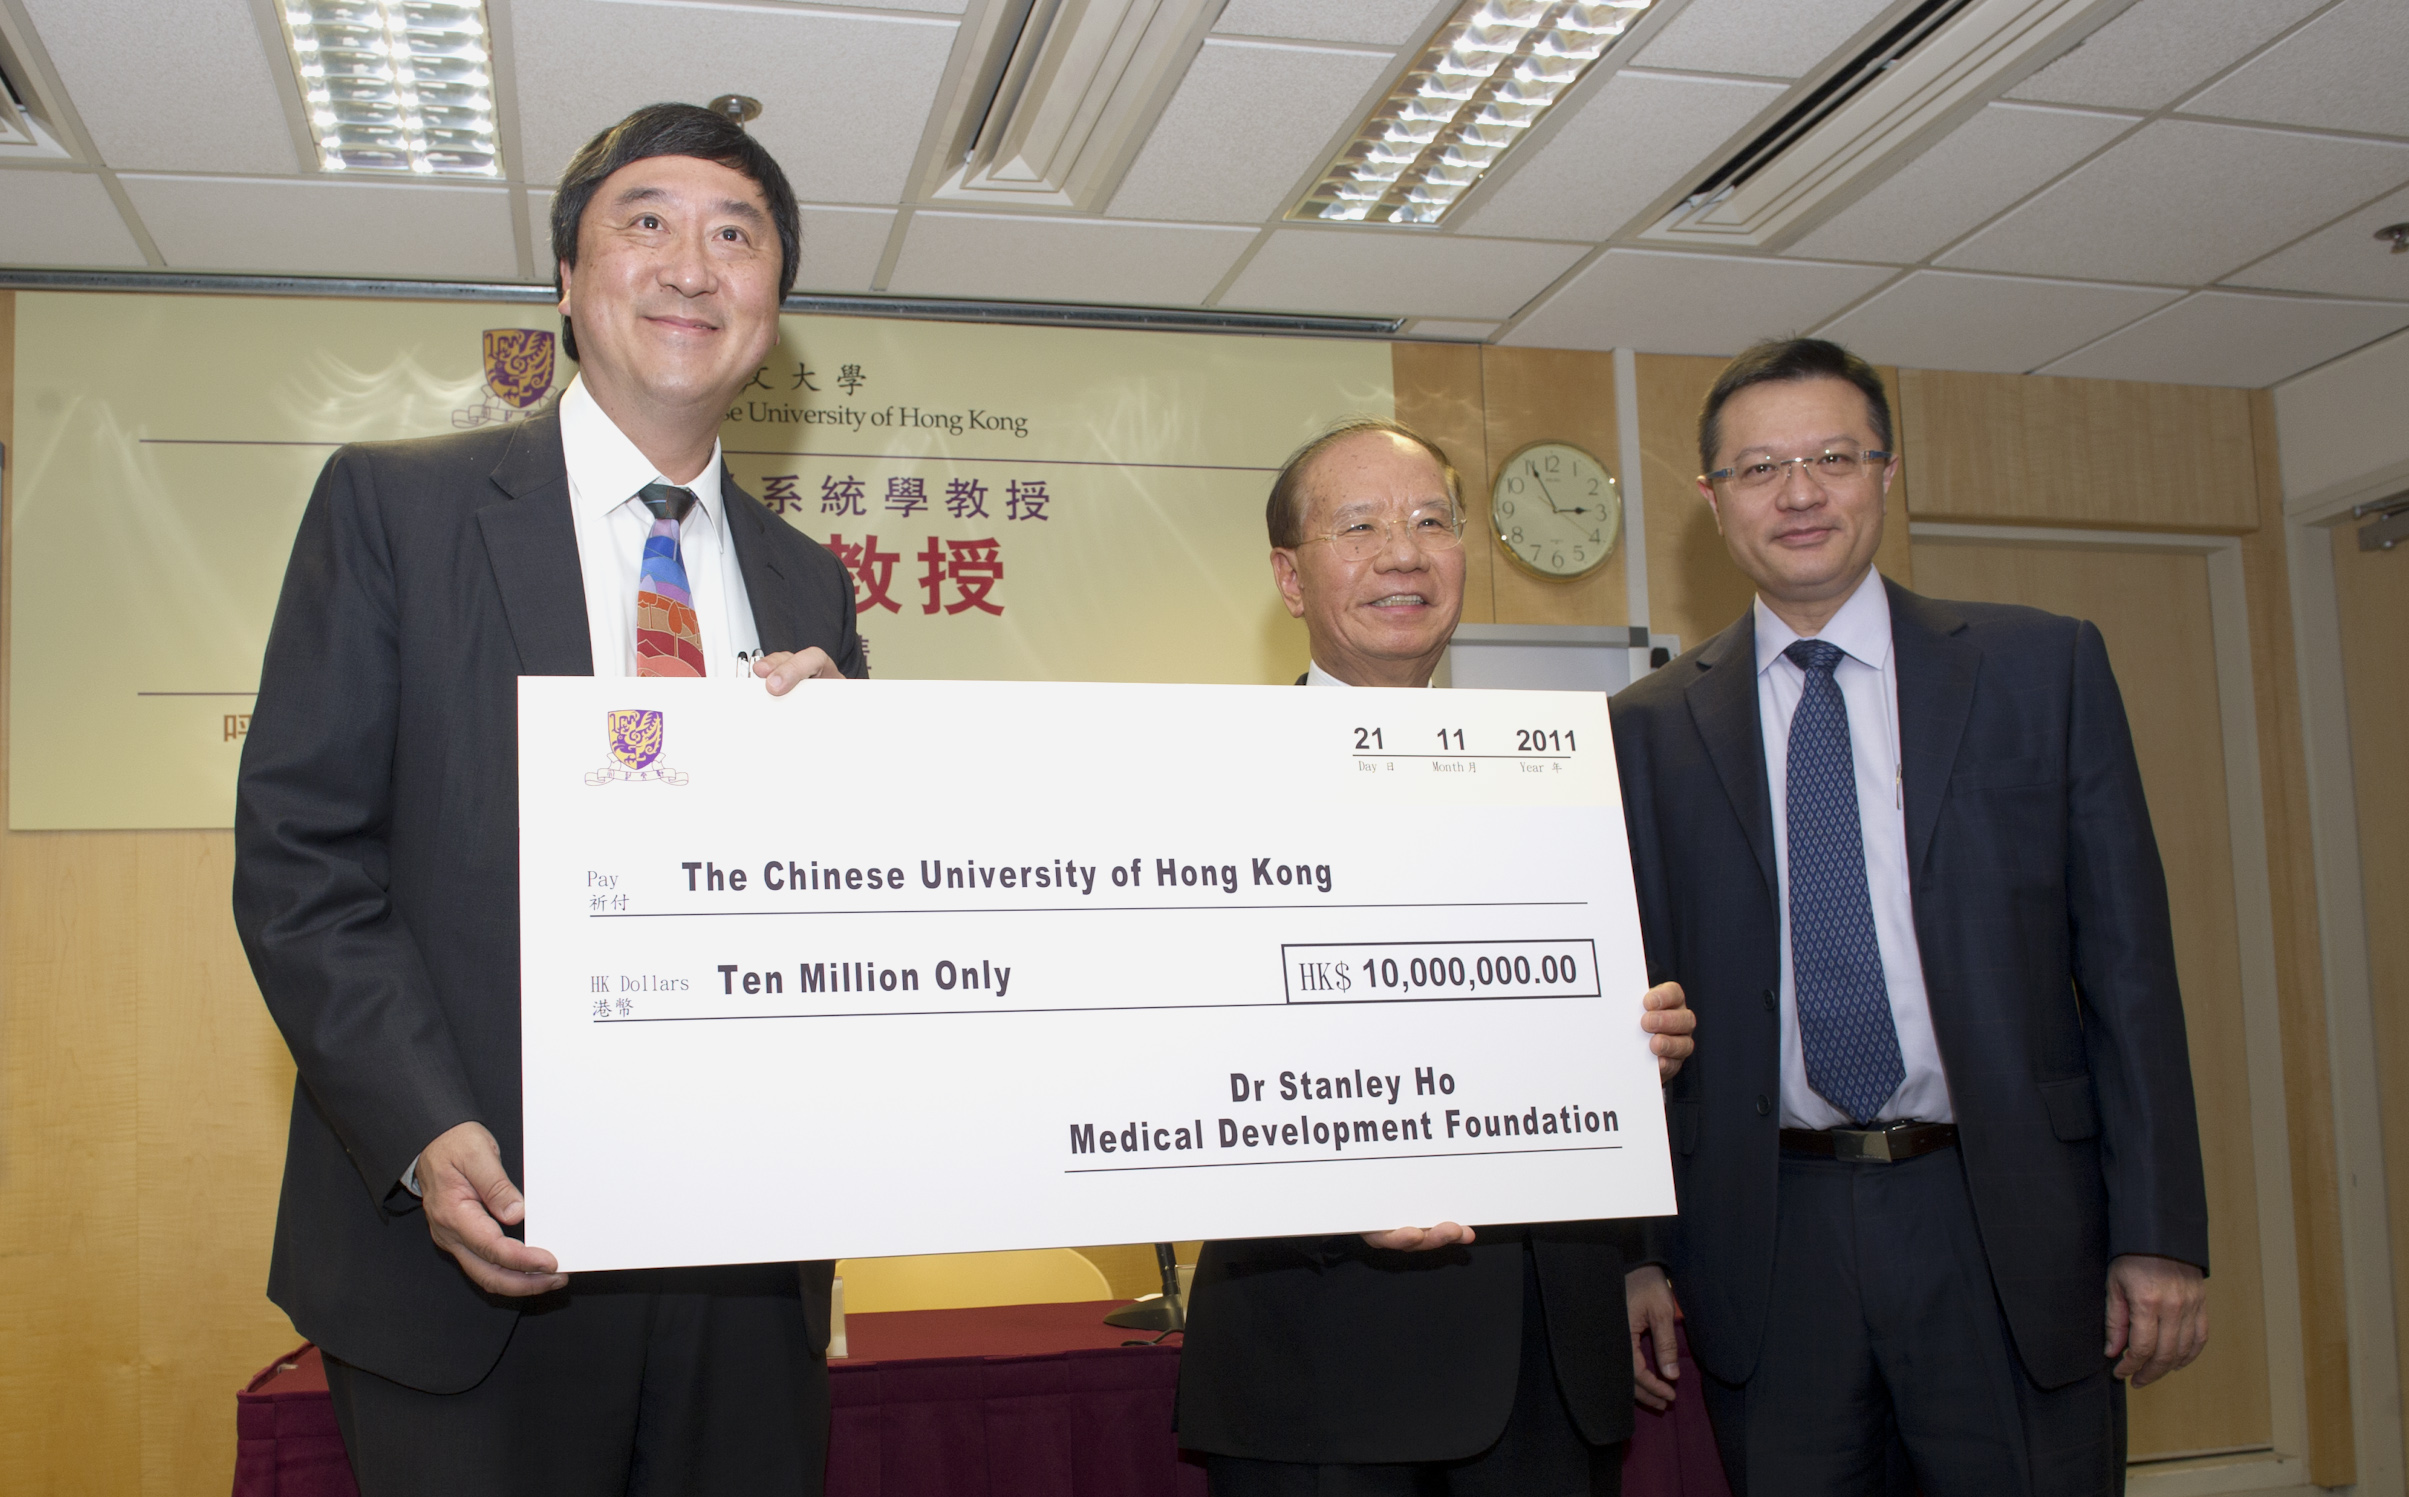 On behalf of Dr. Stanley Ho Medical Development Foundation, Mr. Patrick W.M. Huen presents the cheque to CUHK, received by Prof. Joseph J.Y. Sung.